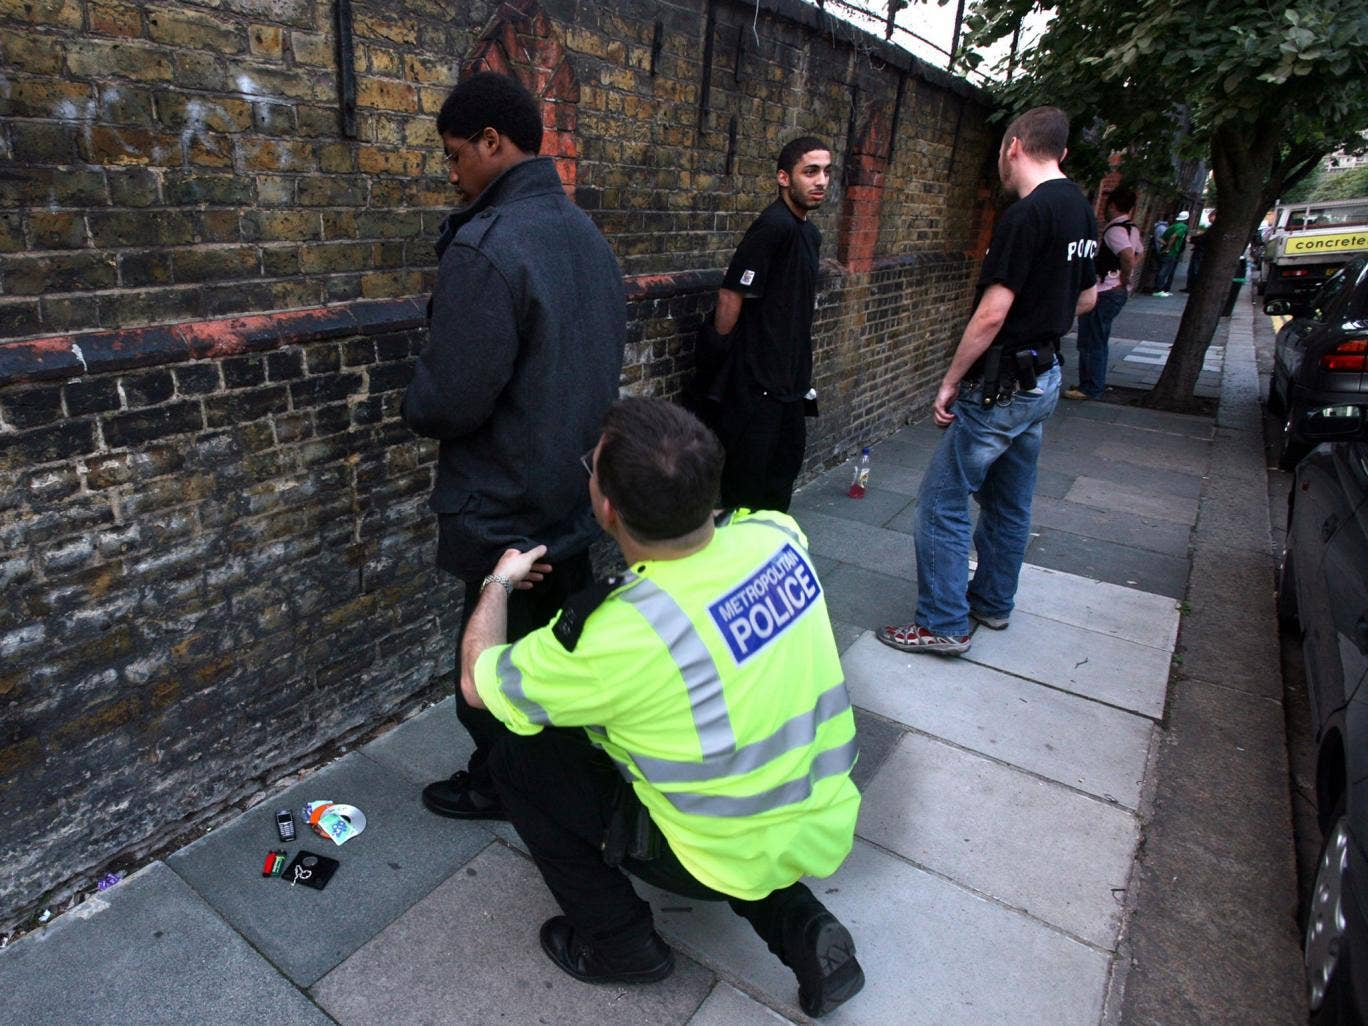 The Metropolitan Police has introduced a 'satisfaction survey' for those stopped and searched